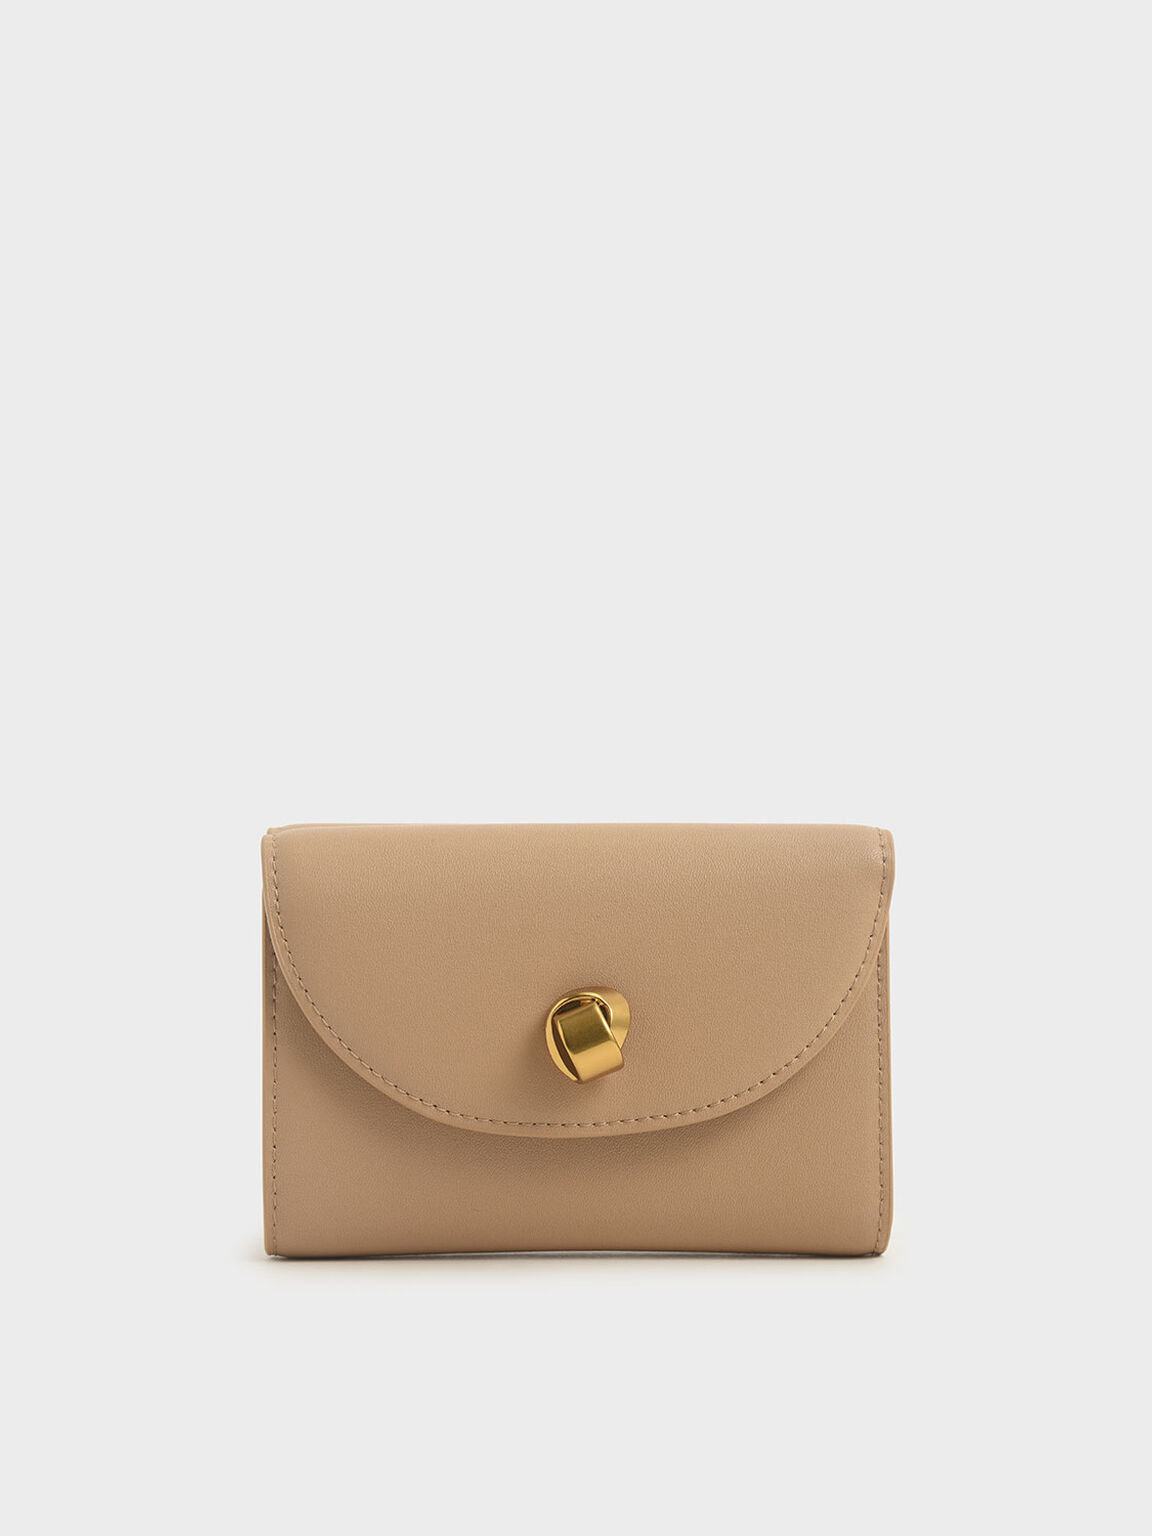 Mini Front Flap Wallet, Beige, hi-res